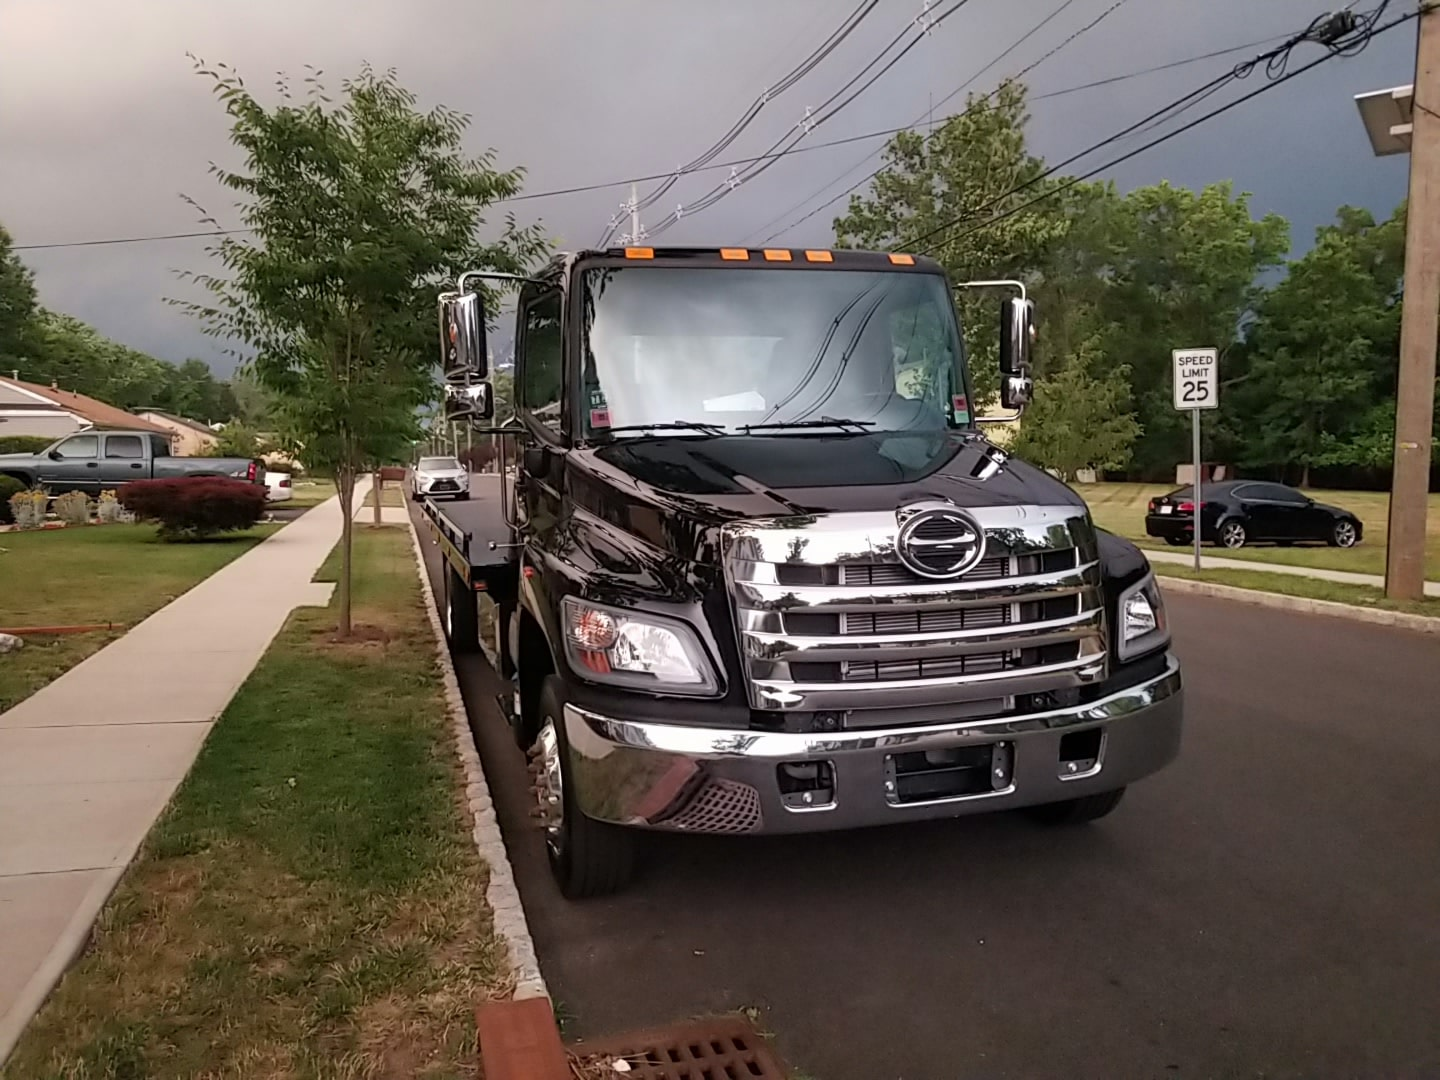 NJ towing service